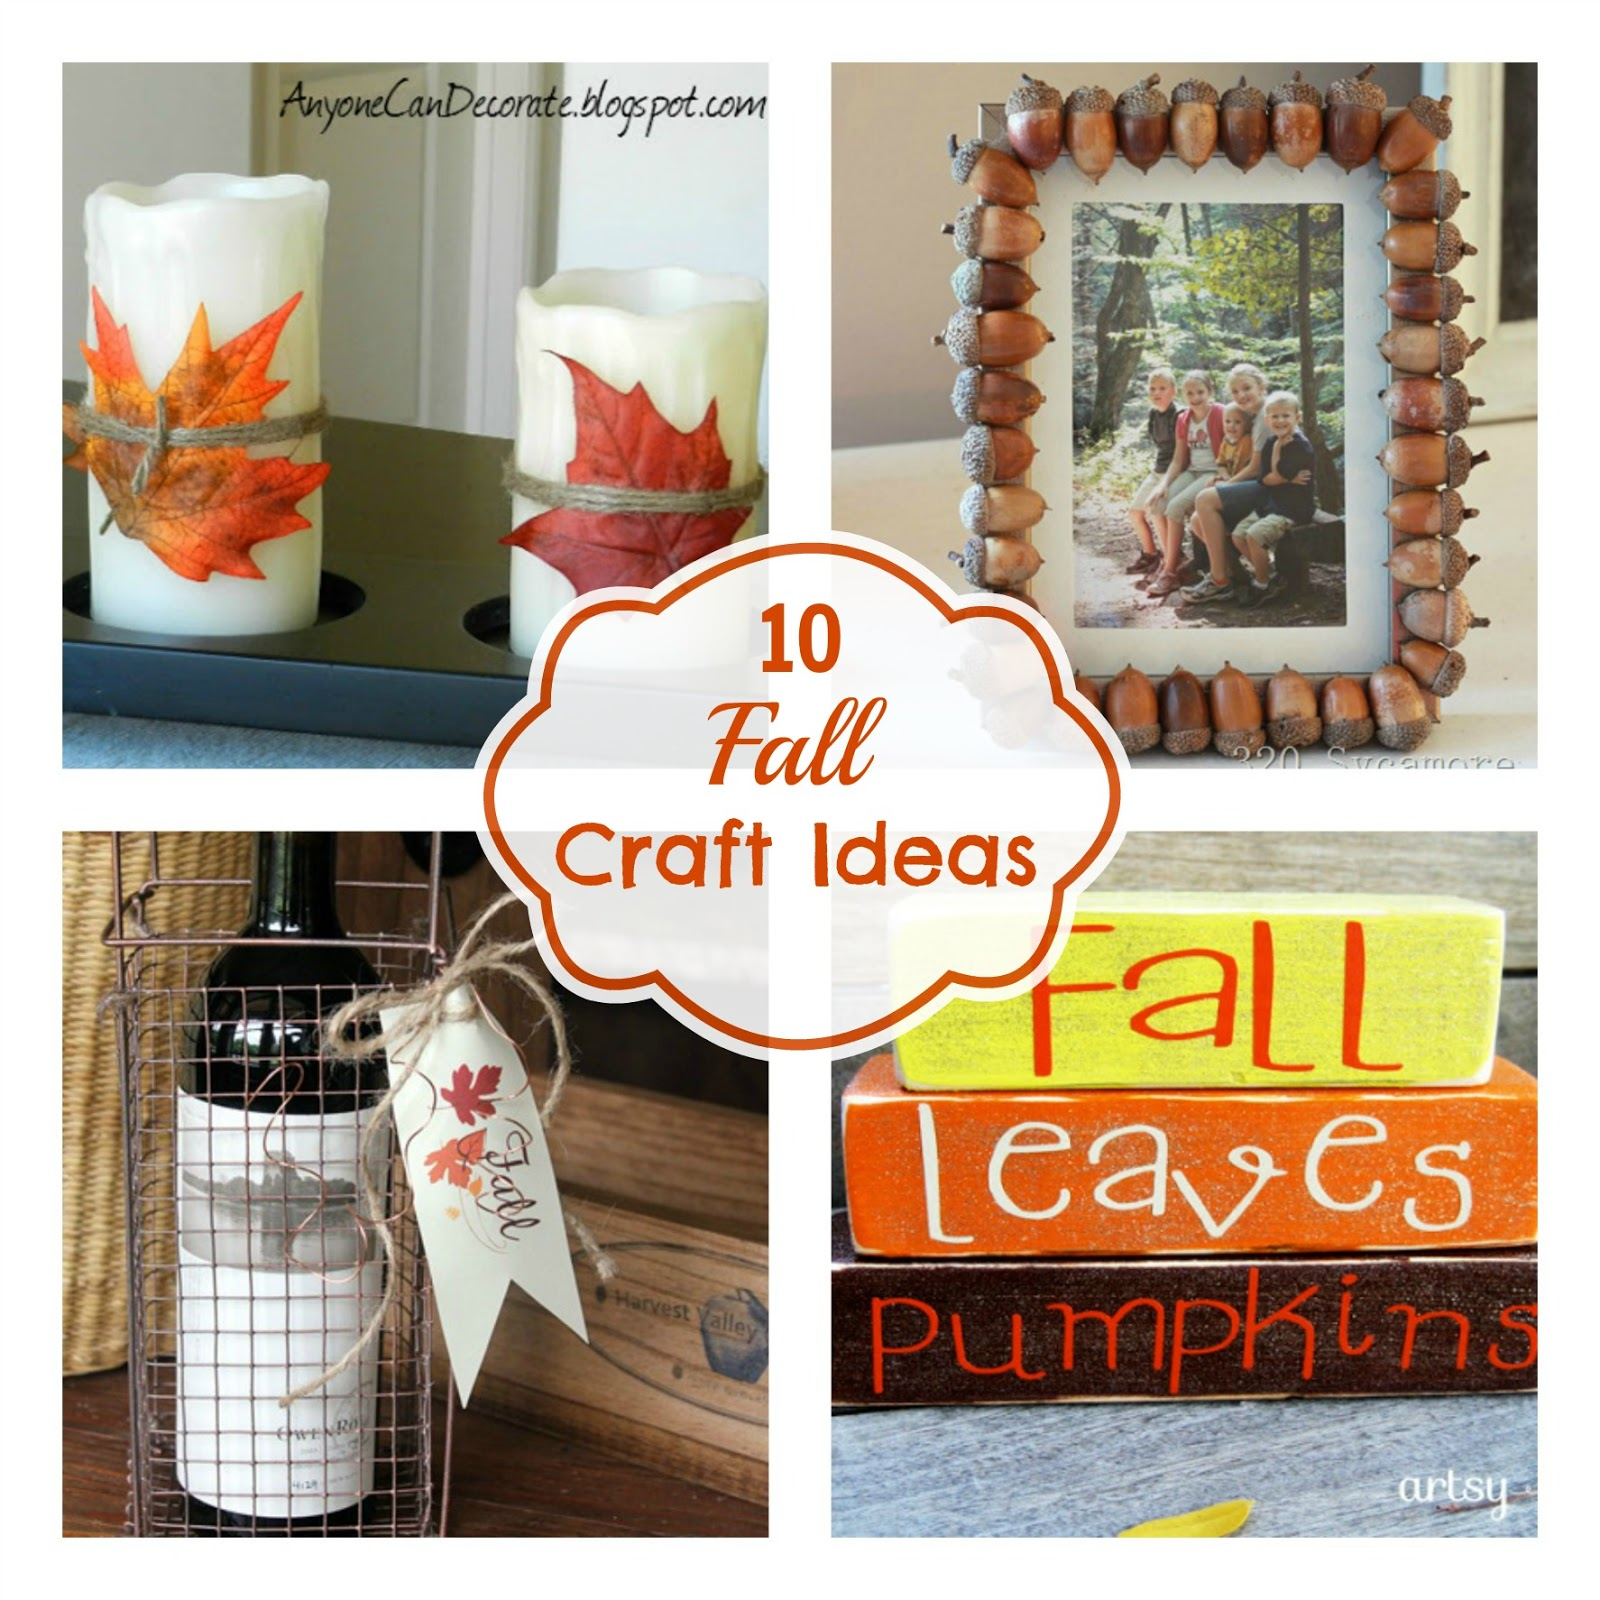 Fun Home Things: 10 Fall Craft Ideas